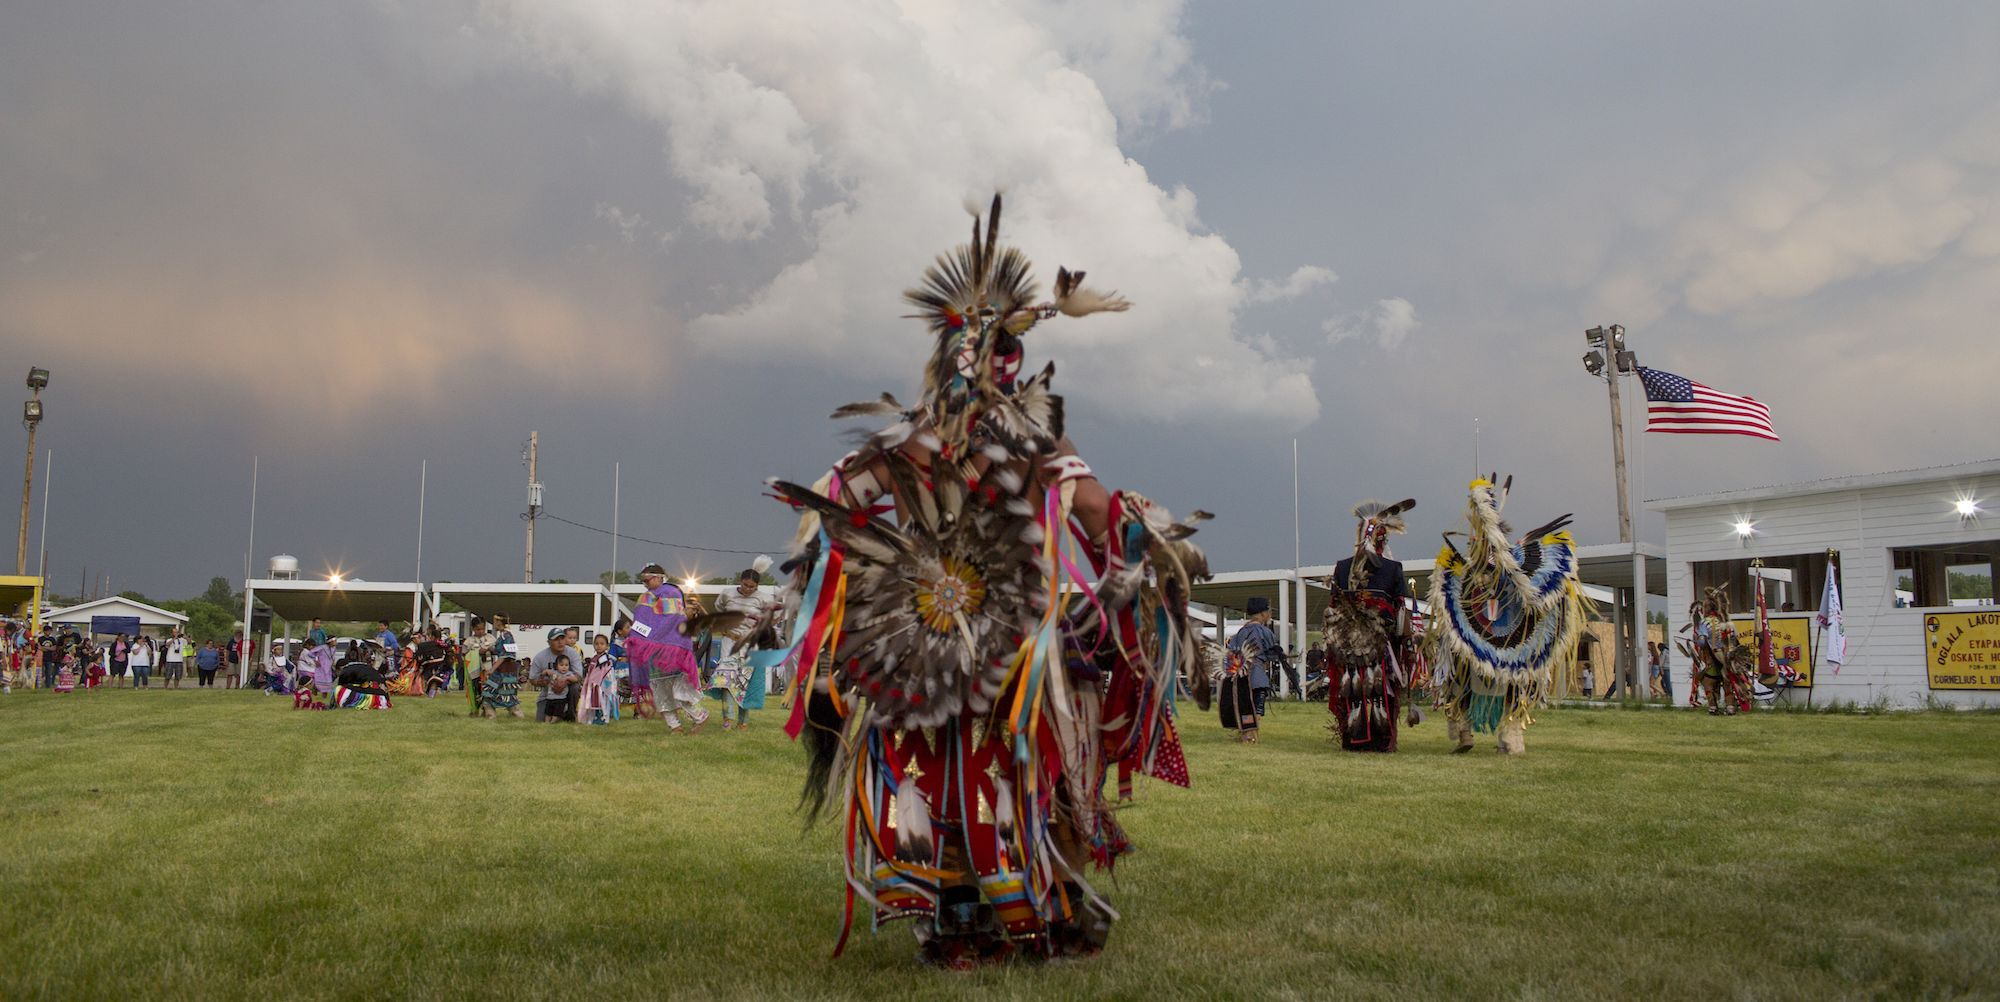 The people of the Pine Ridge reservation have been hit by an ungodly disaster.